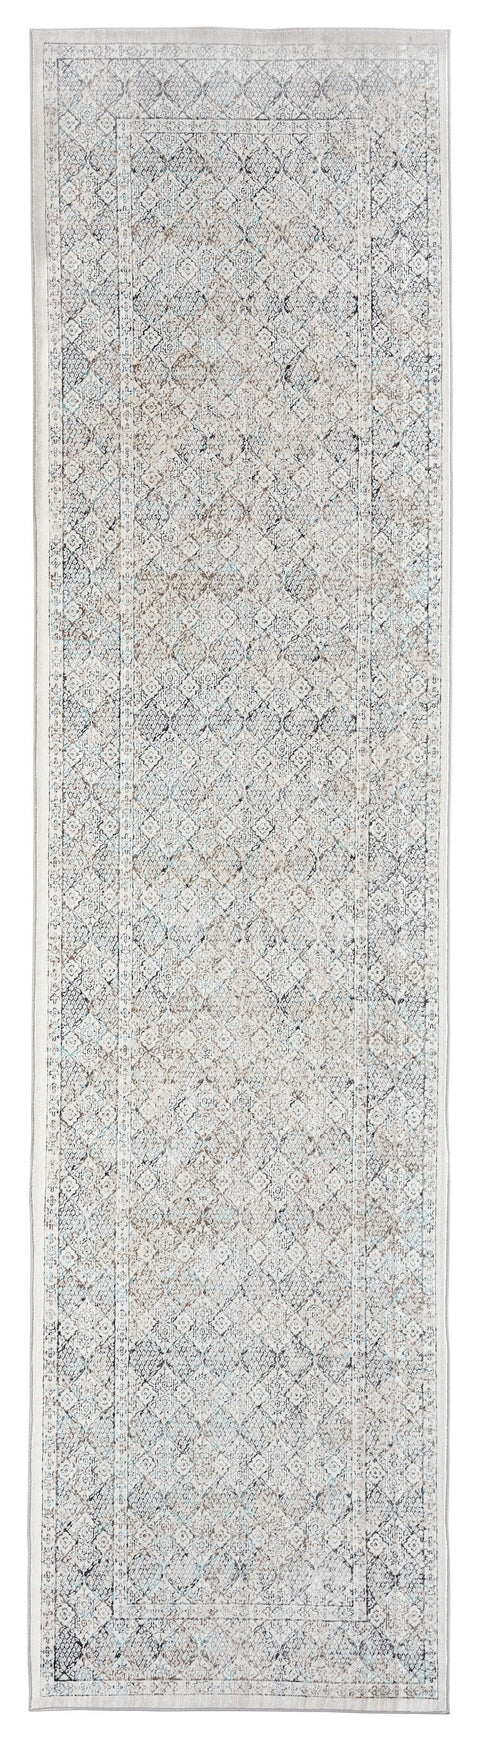 Tallulah Cream Grey and Blue Traditional Floral Runner Rug